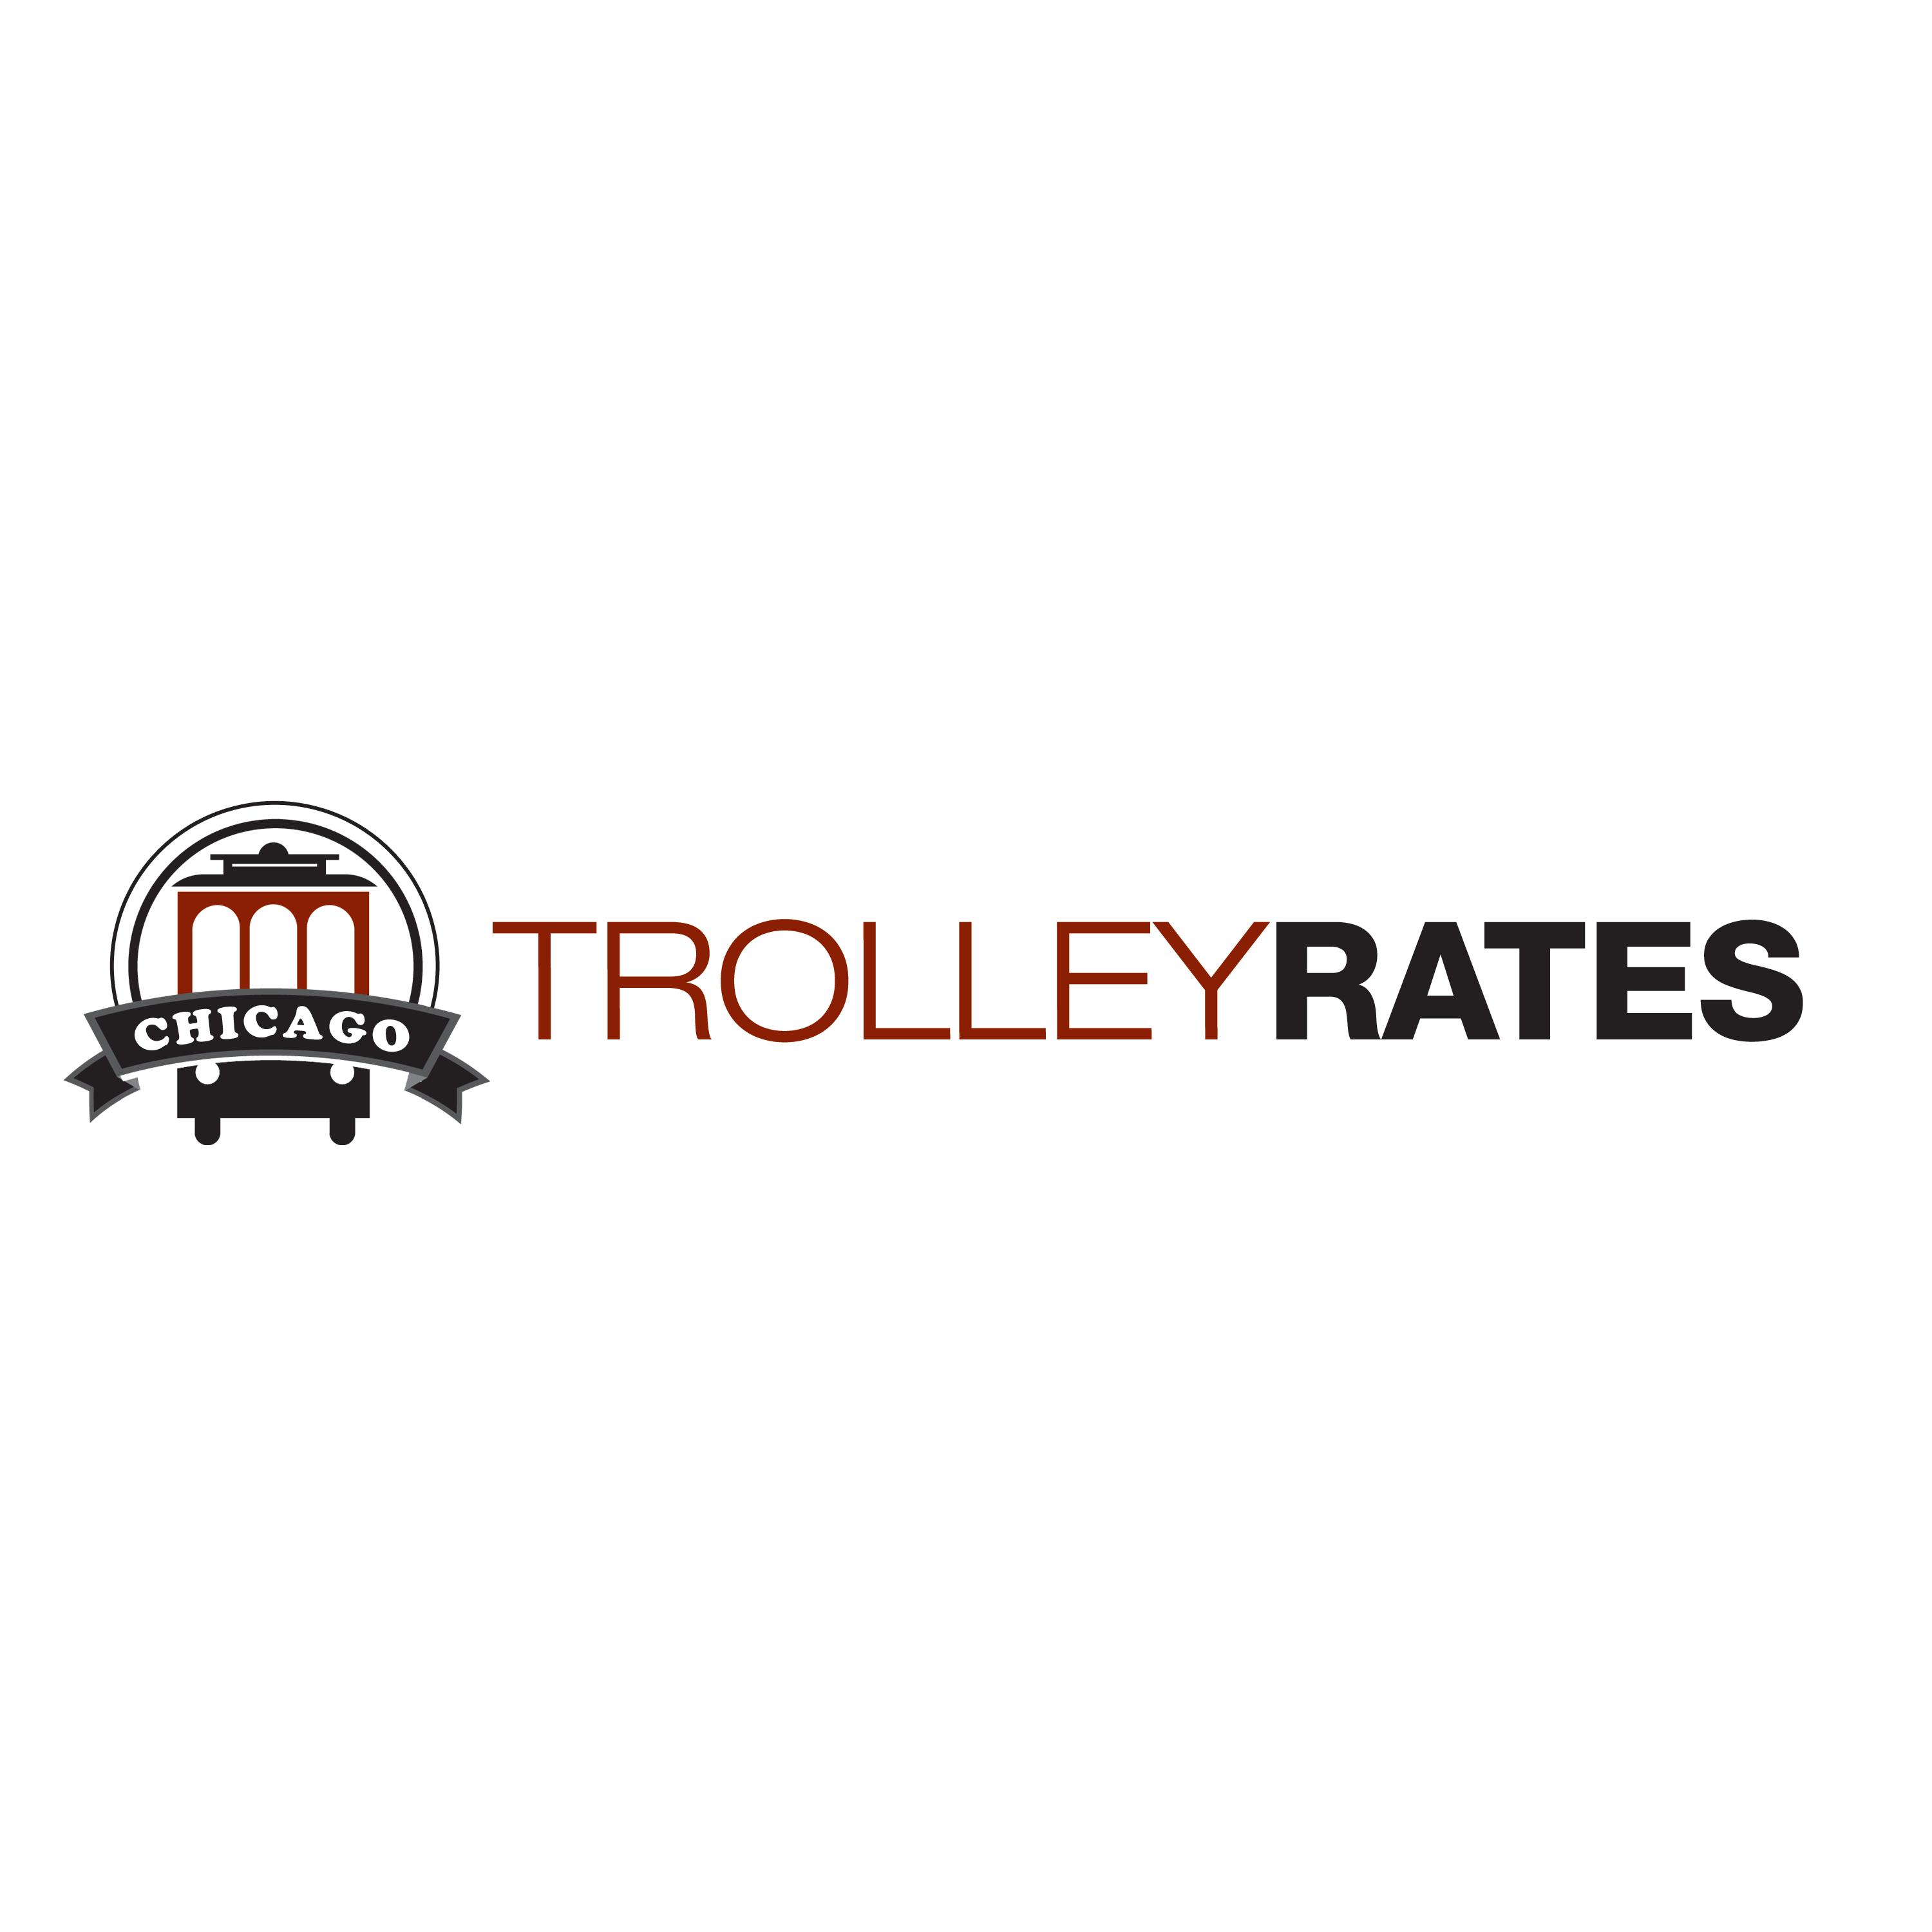 Trolley Rates